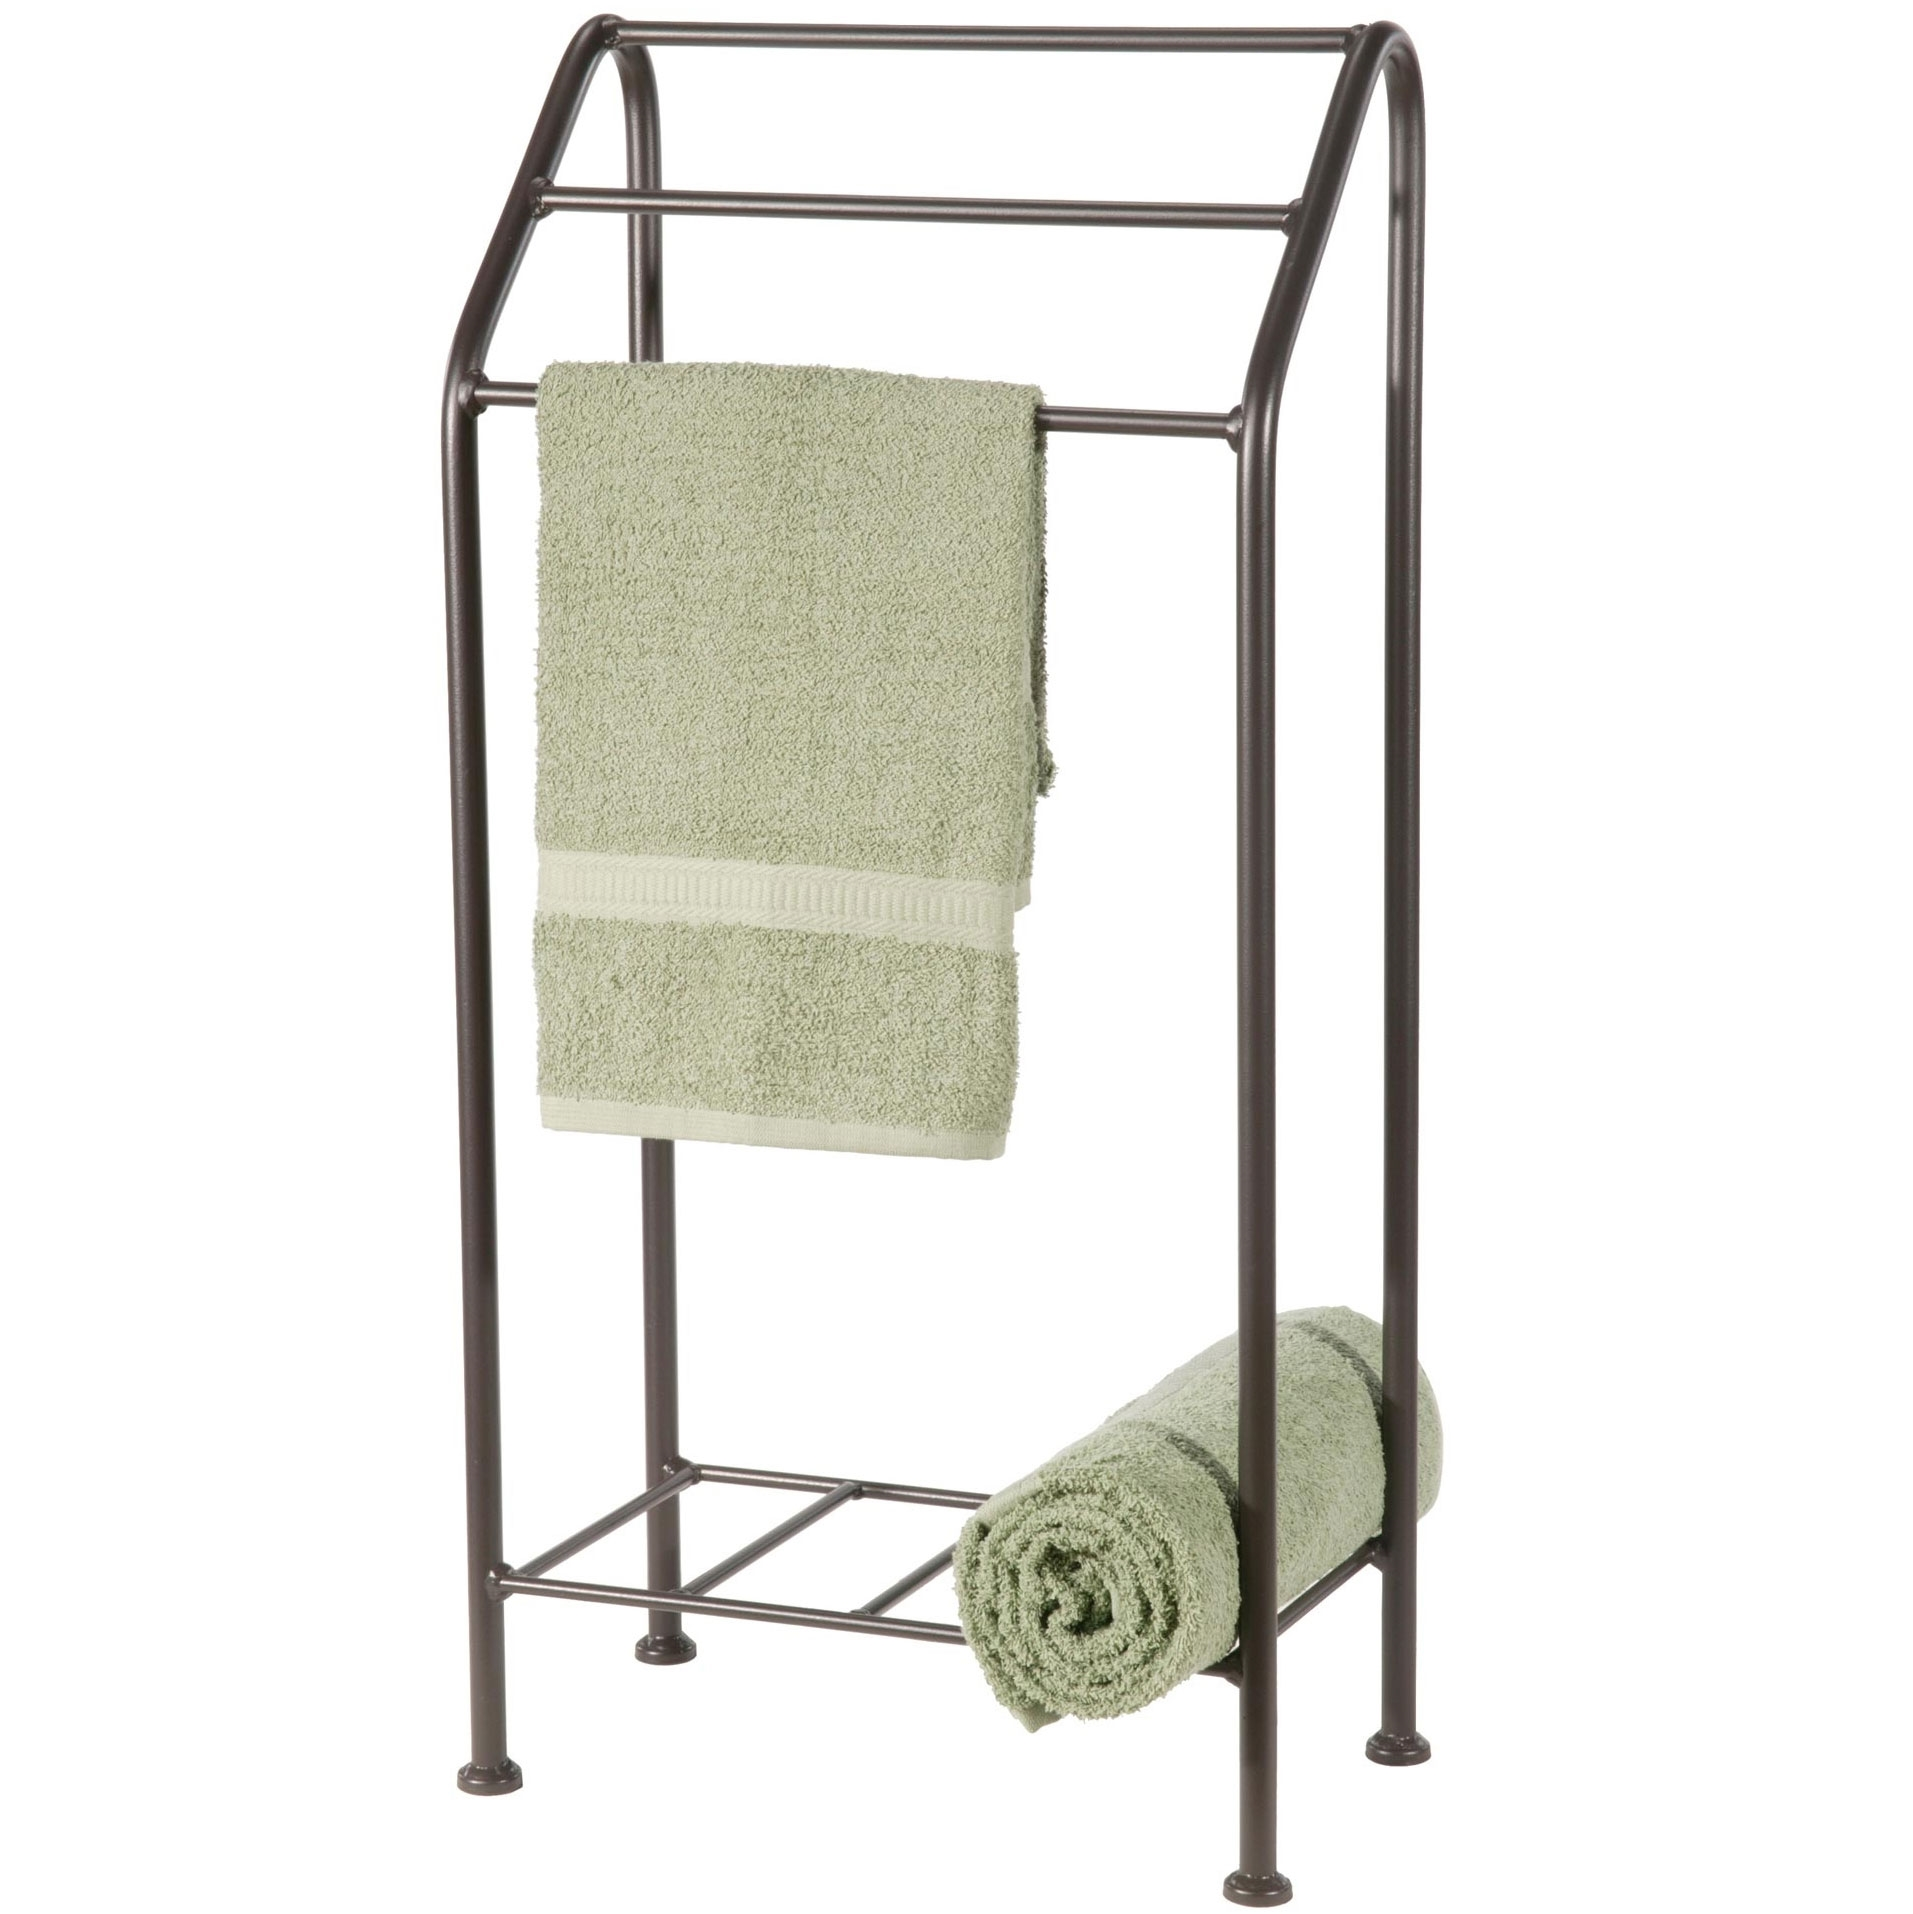 Fullsize Of Standing Towel Rack